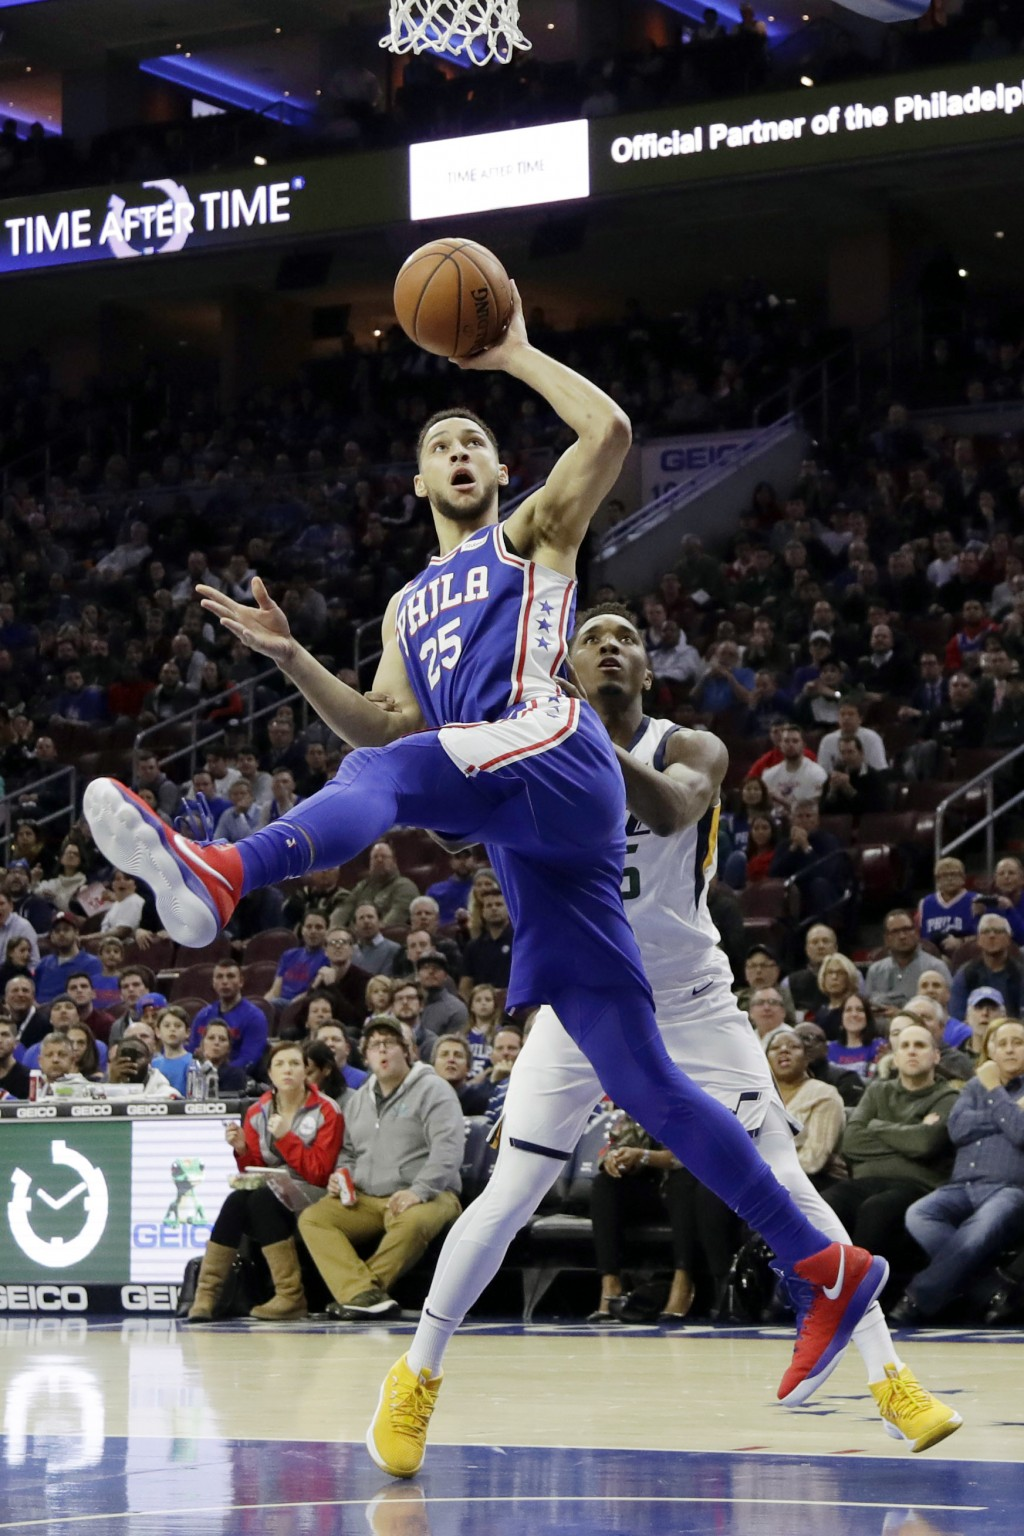 FILE - In this Nov. 20, 2017, file photo, Philadelphia 76ers' Ben Simmons, left, goes up for a shot against Utah Jazz's Donovan Mitchell, right, durin